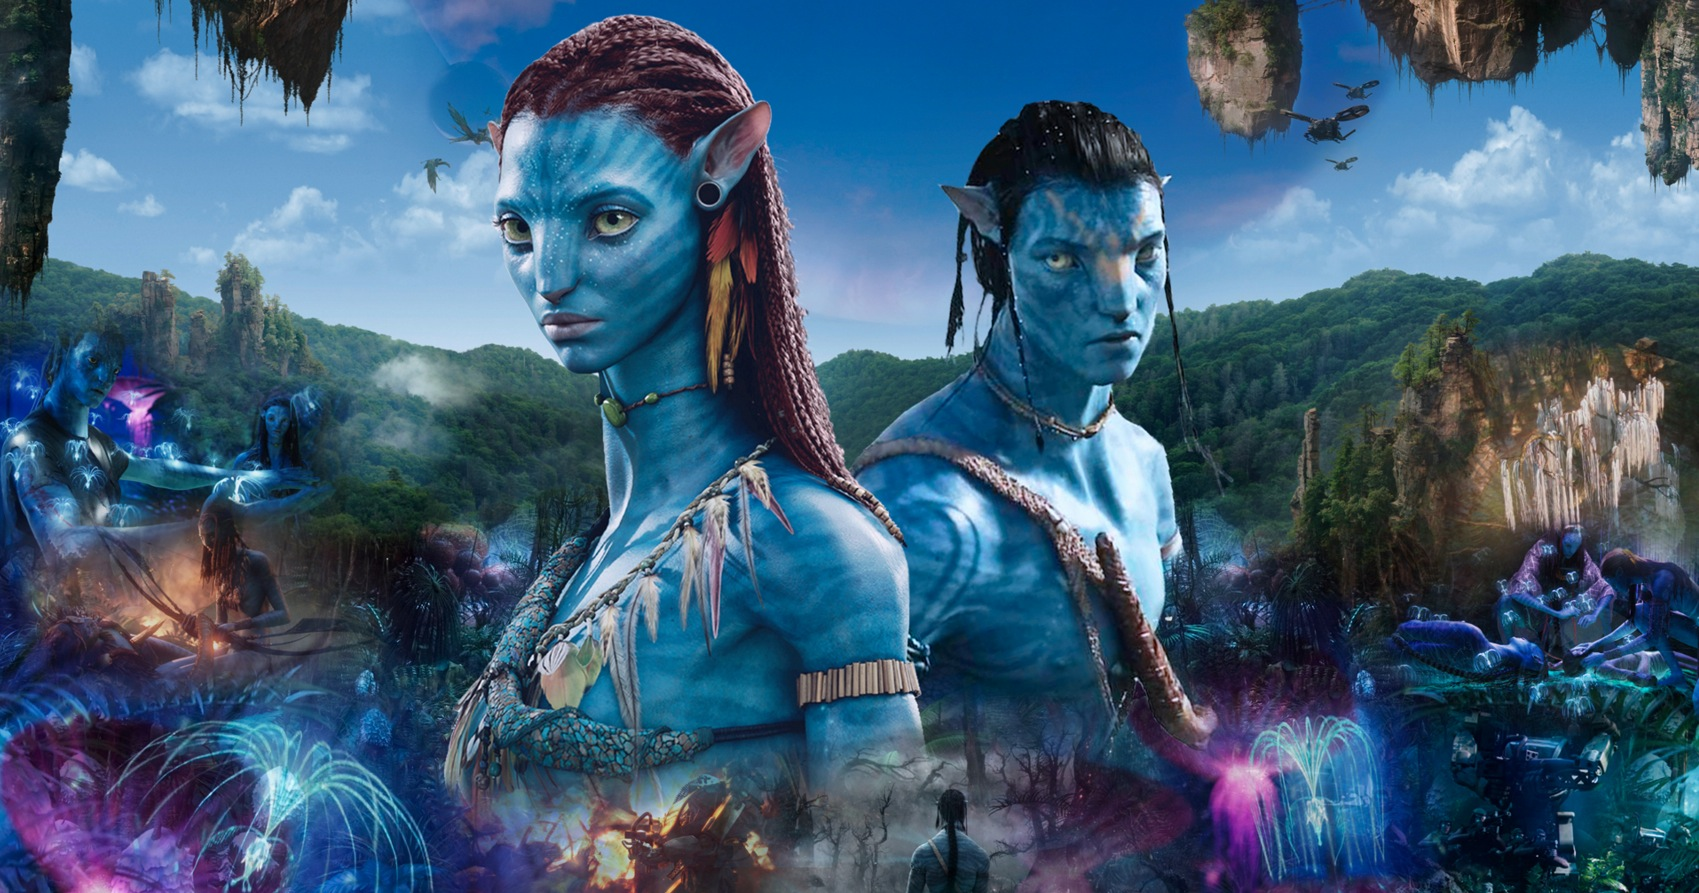 James Cameron Avatar 2 Movie Release Date Announced - All India ...